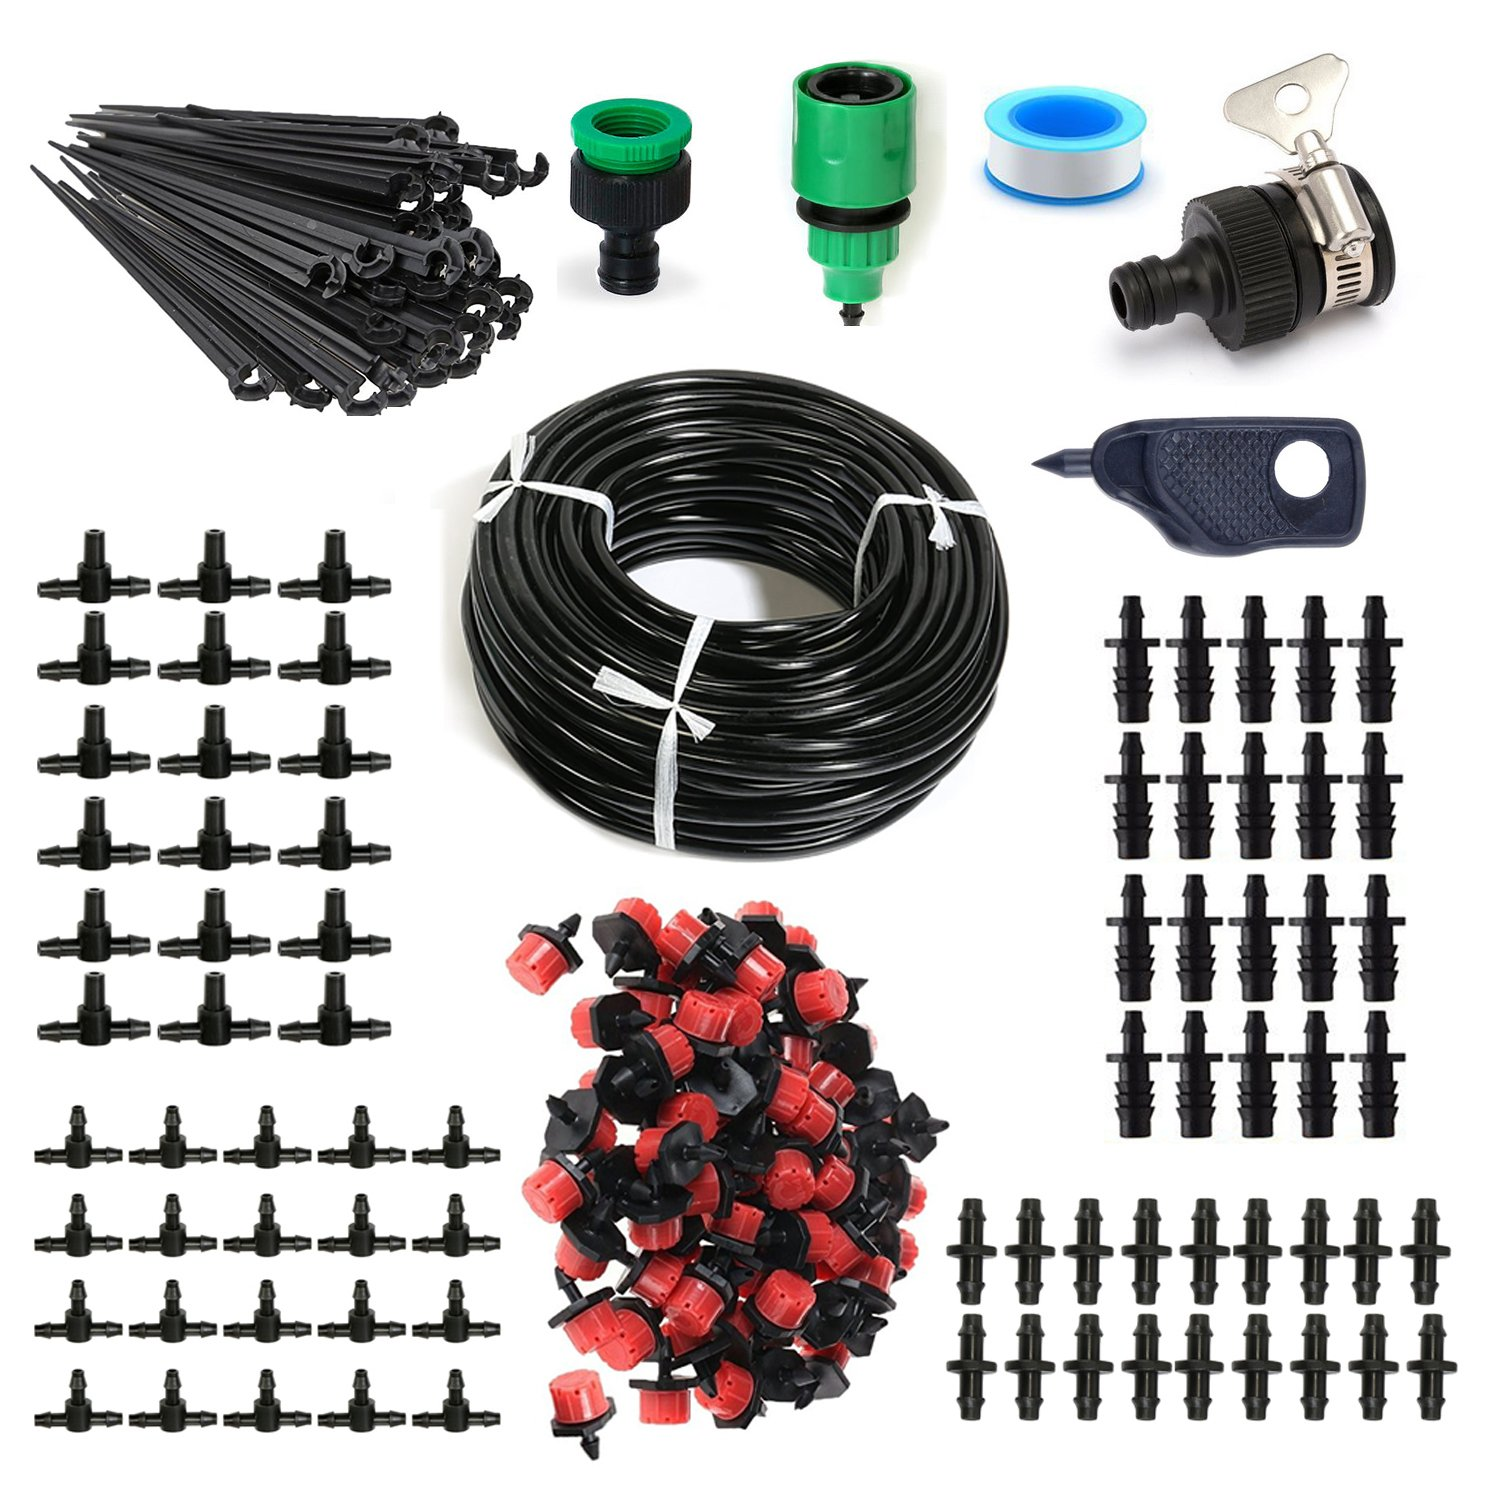 100ft 1/4'' Distribution Tubing Irrigation Micro Irrigation Drip System Garden, Lawn, Patio, Greenhouse Plants by rescozy